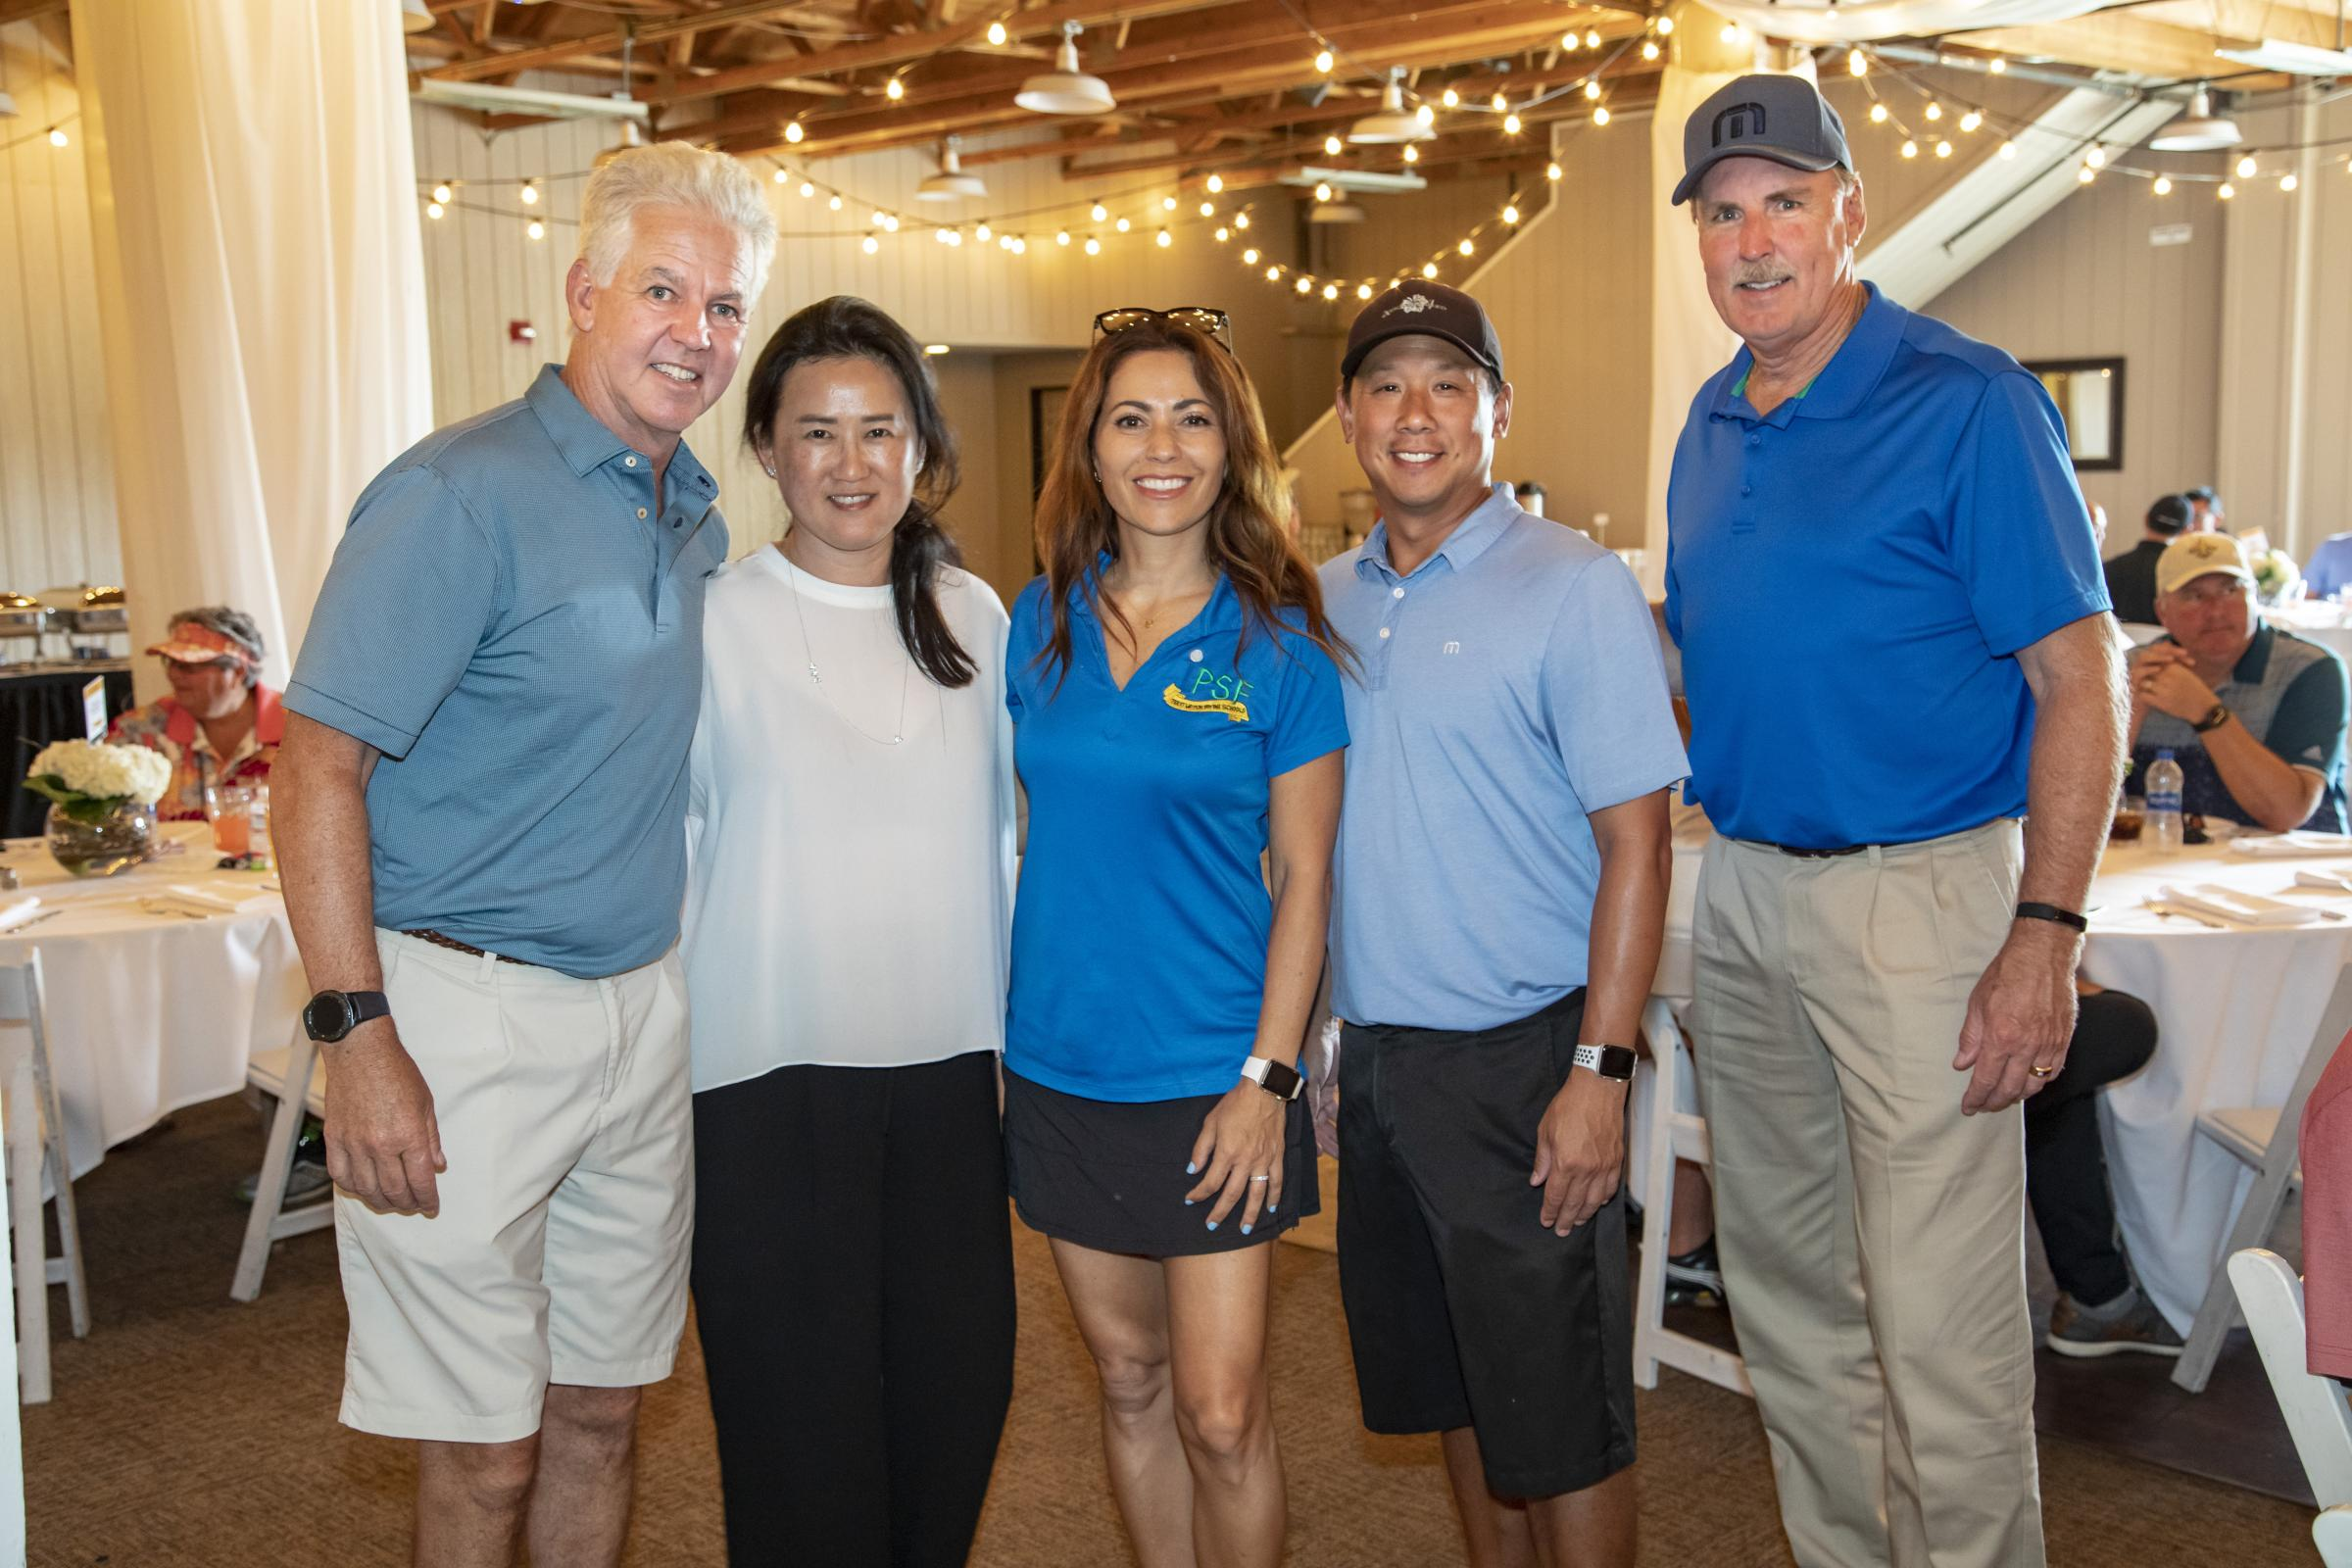 Irvine Public Schools Foundation Raises More Than $65,000 at 9th Annual Tee It Up For Education Golf Tournament Photo - Click Here to See